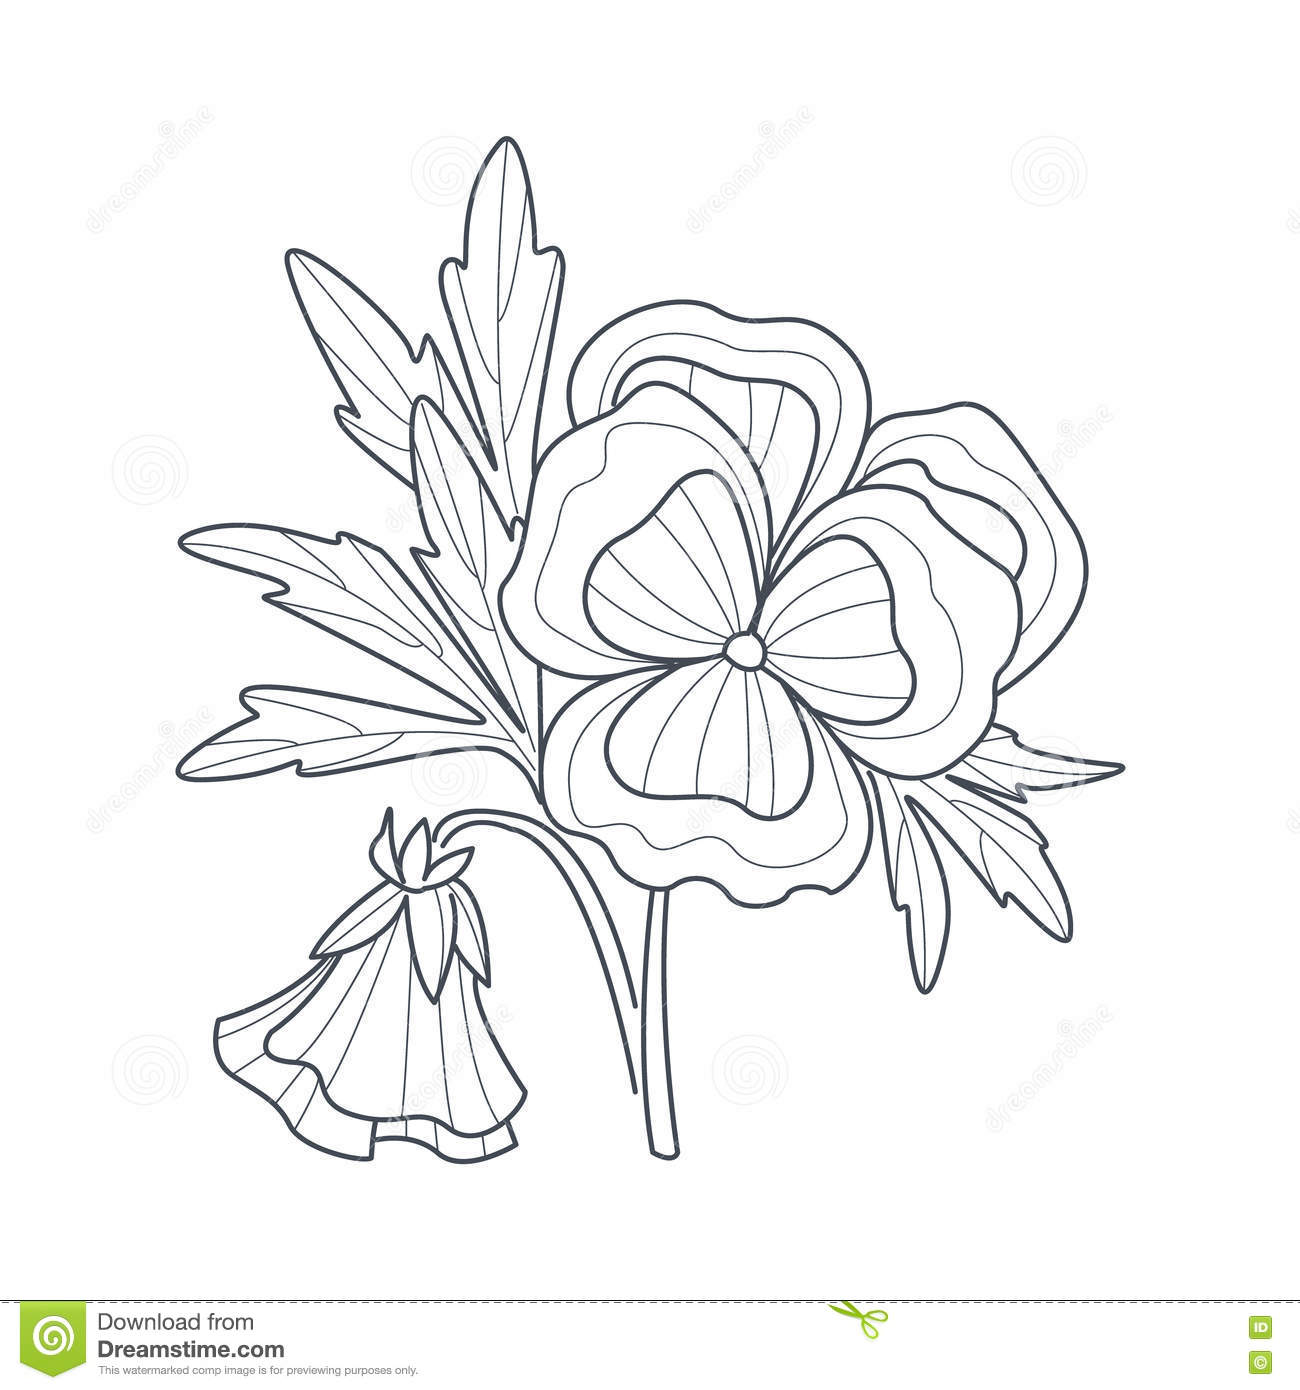 Pansy Flower Monochrome Drawing For Coloring Book Stock